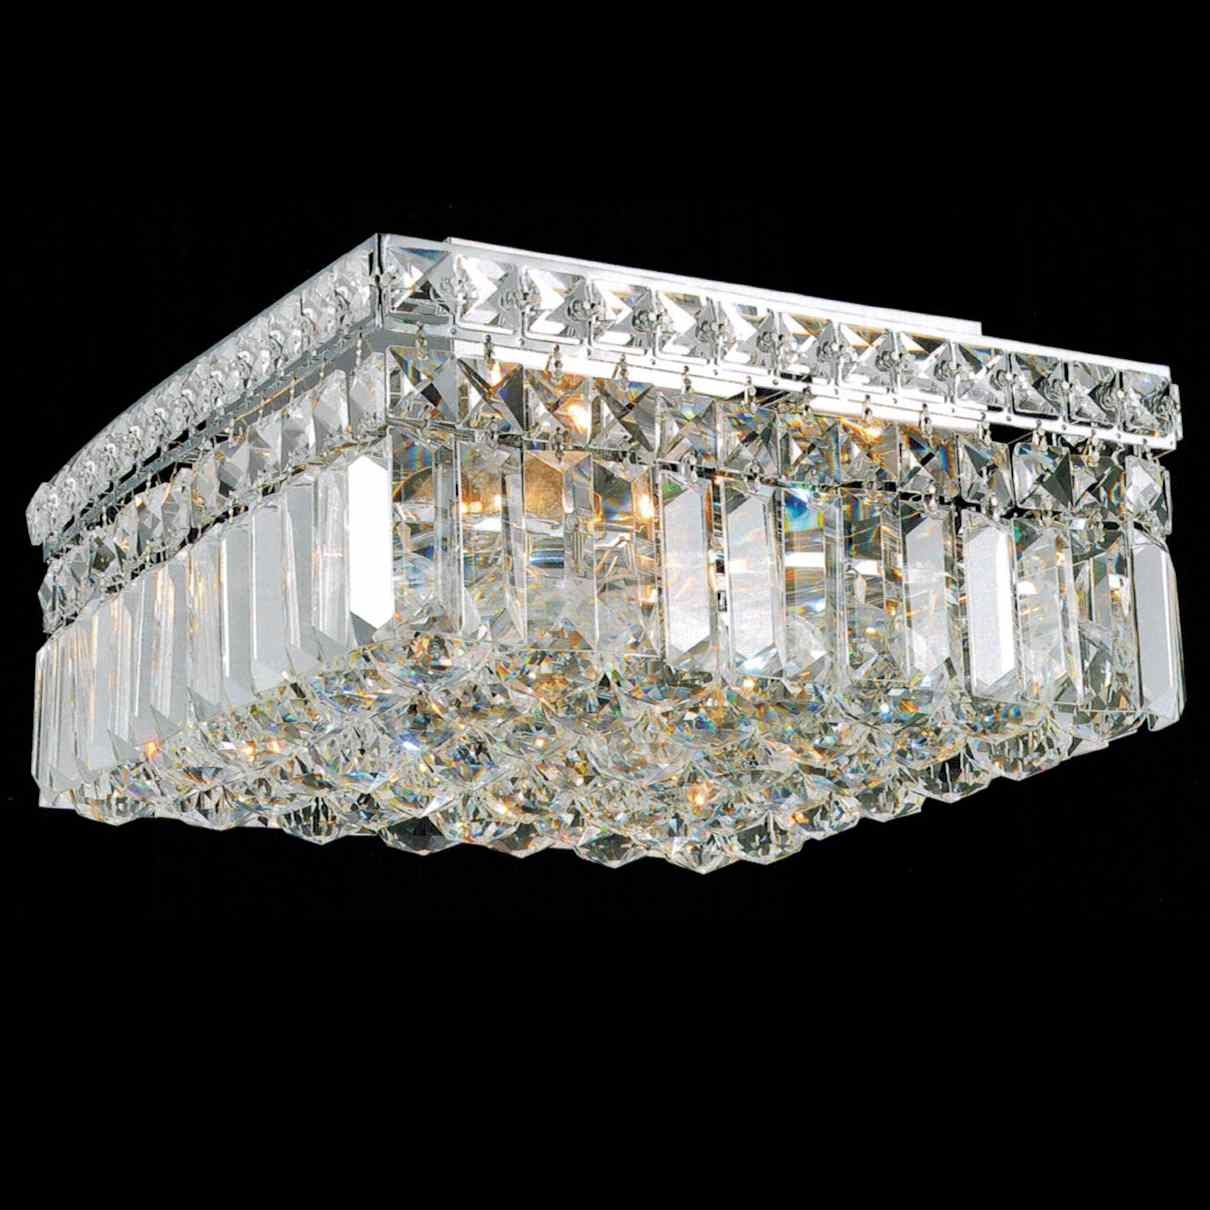 Flush Mount Crystal Chandelier Lighting Intended For 4light Chrome Crystal Chandeliers (Image 7 of 25)